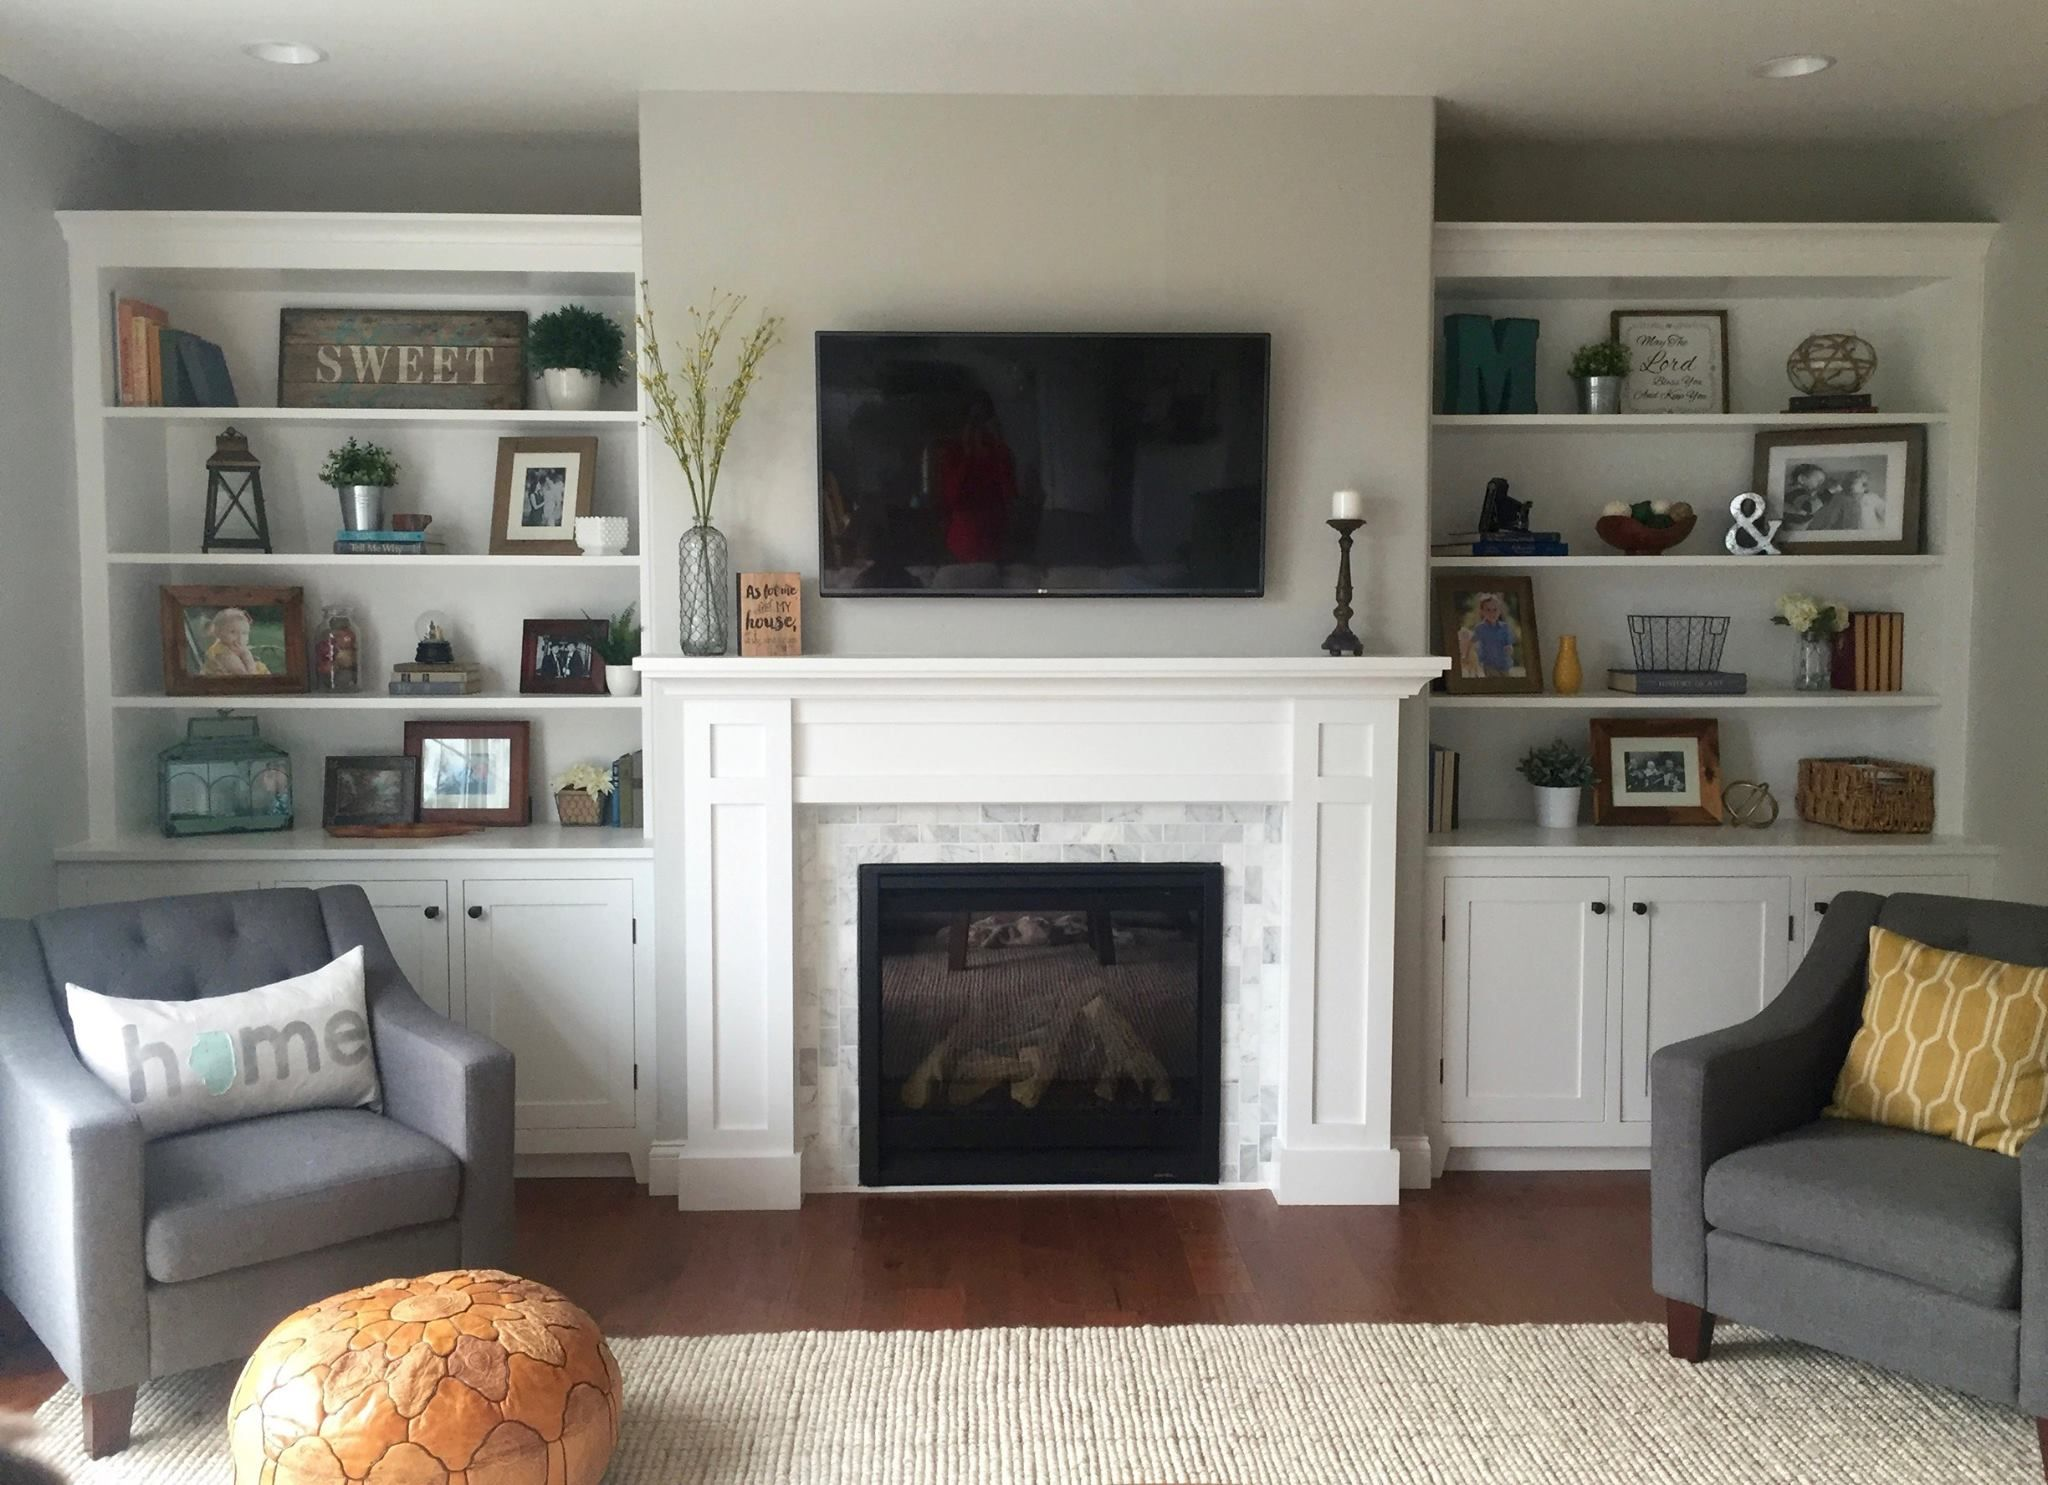 Instructions to build this fireplace mantel with built-in ...